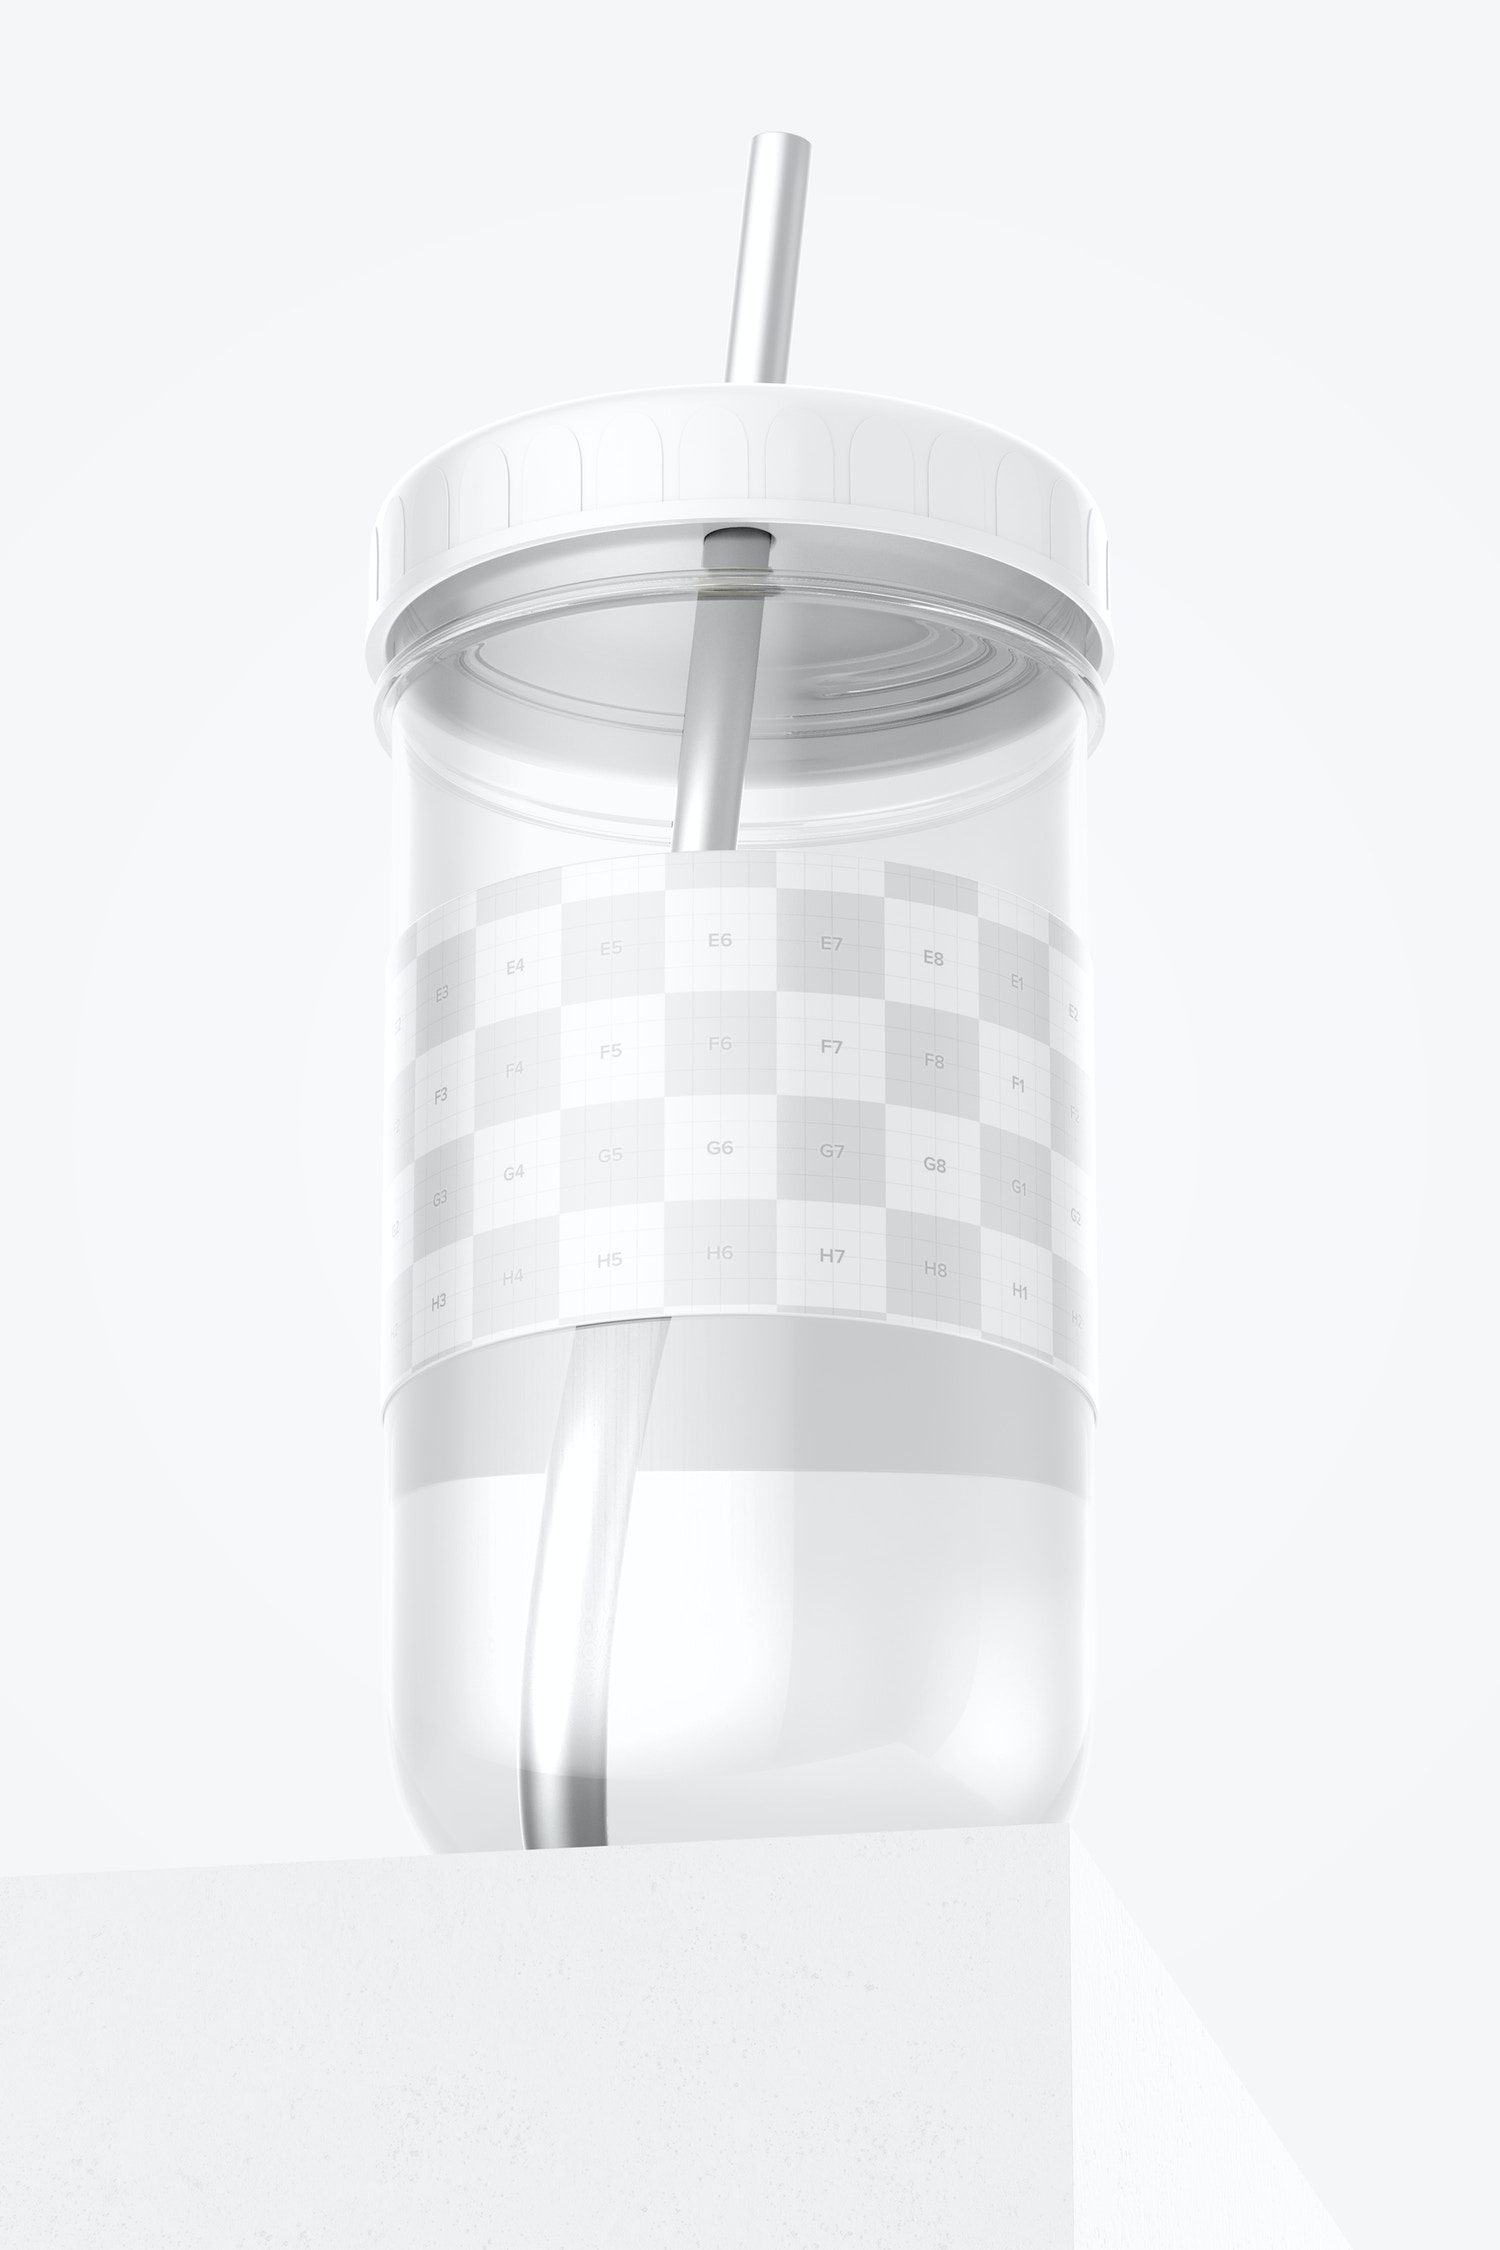 Smoothie Cup with Lid Mockup